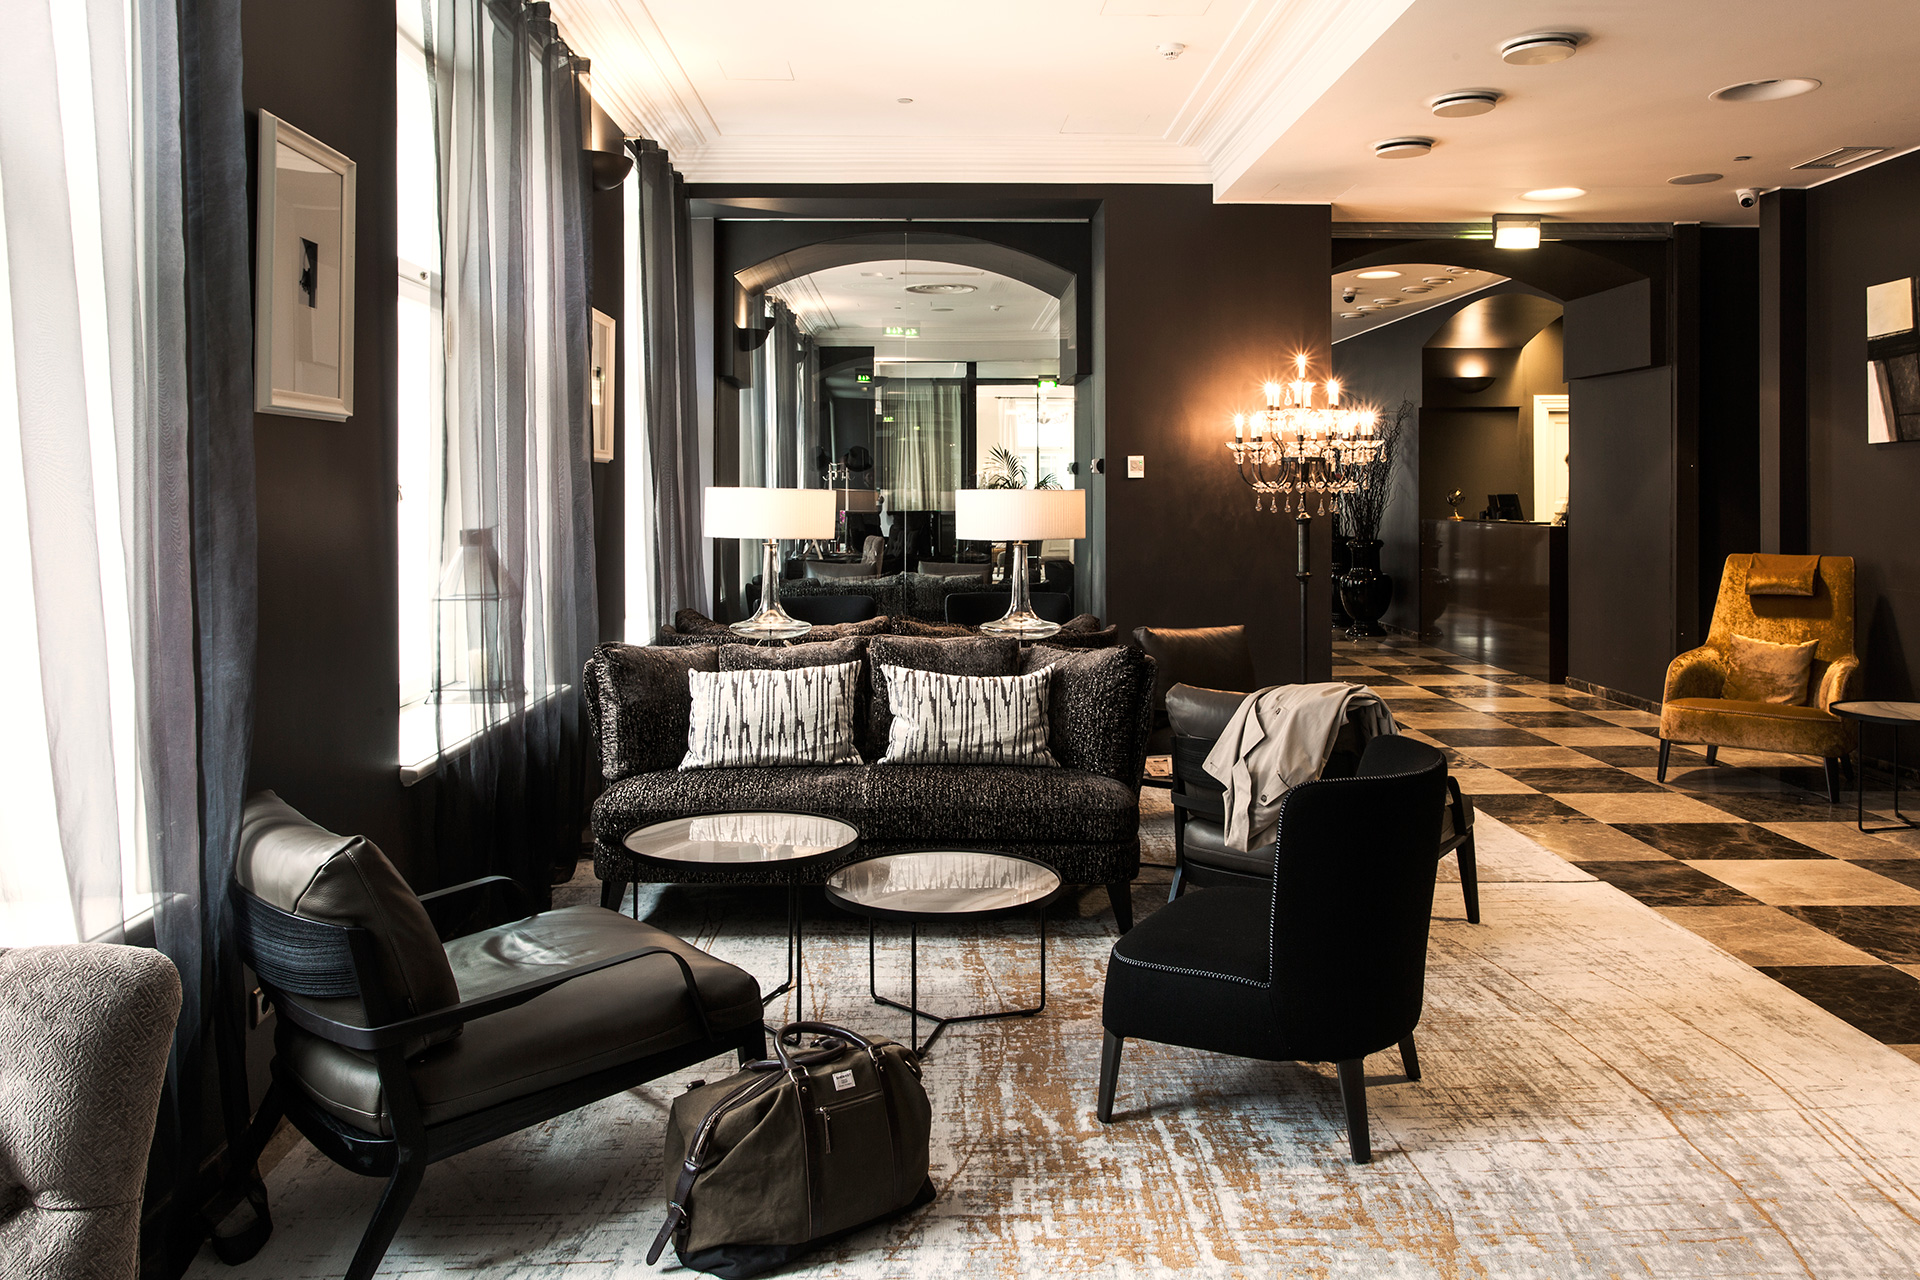 Are Designed In Modern Art Style With Deco Touches And Offer Refined Elegant Decór Most Of The Rooms Feature Meval Old Town Views